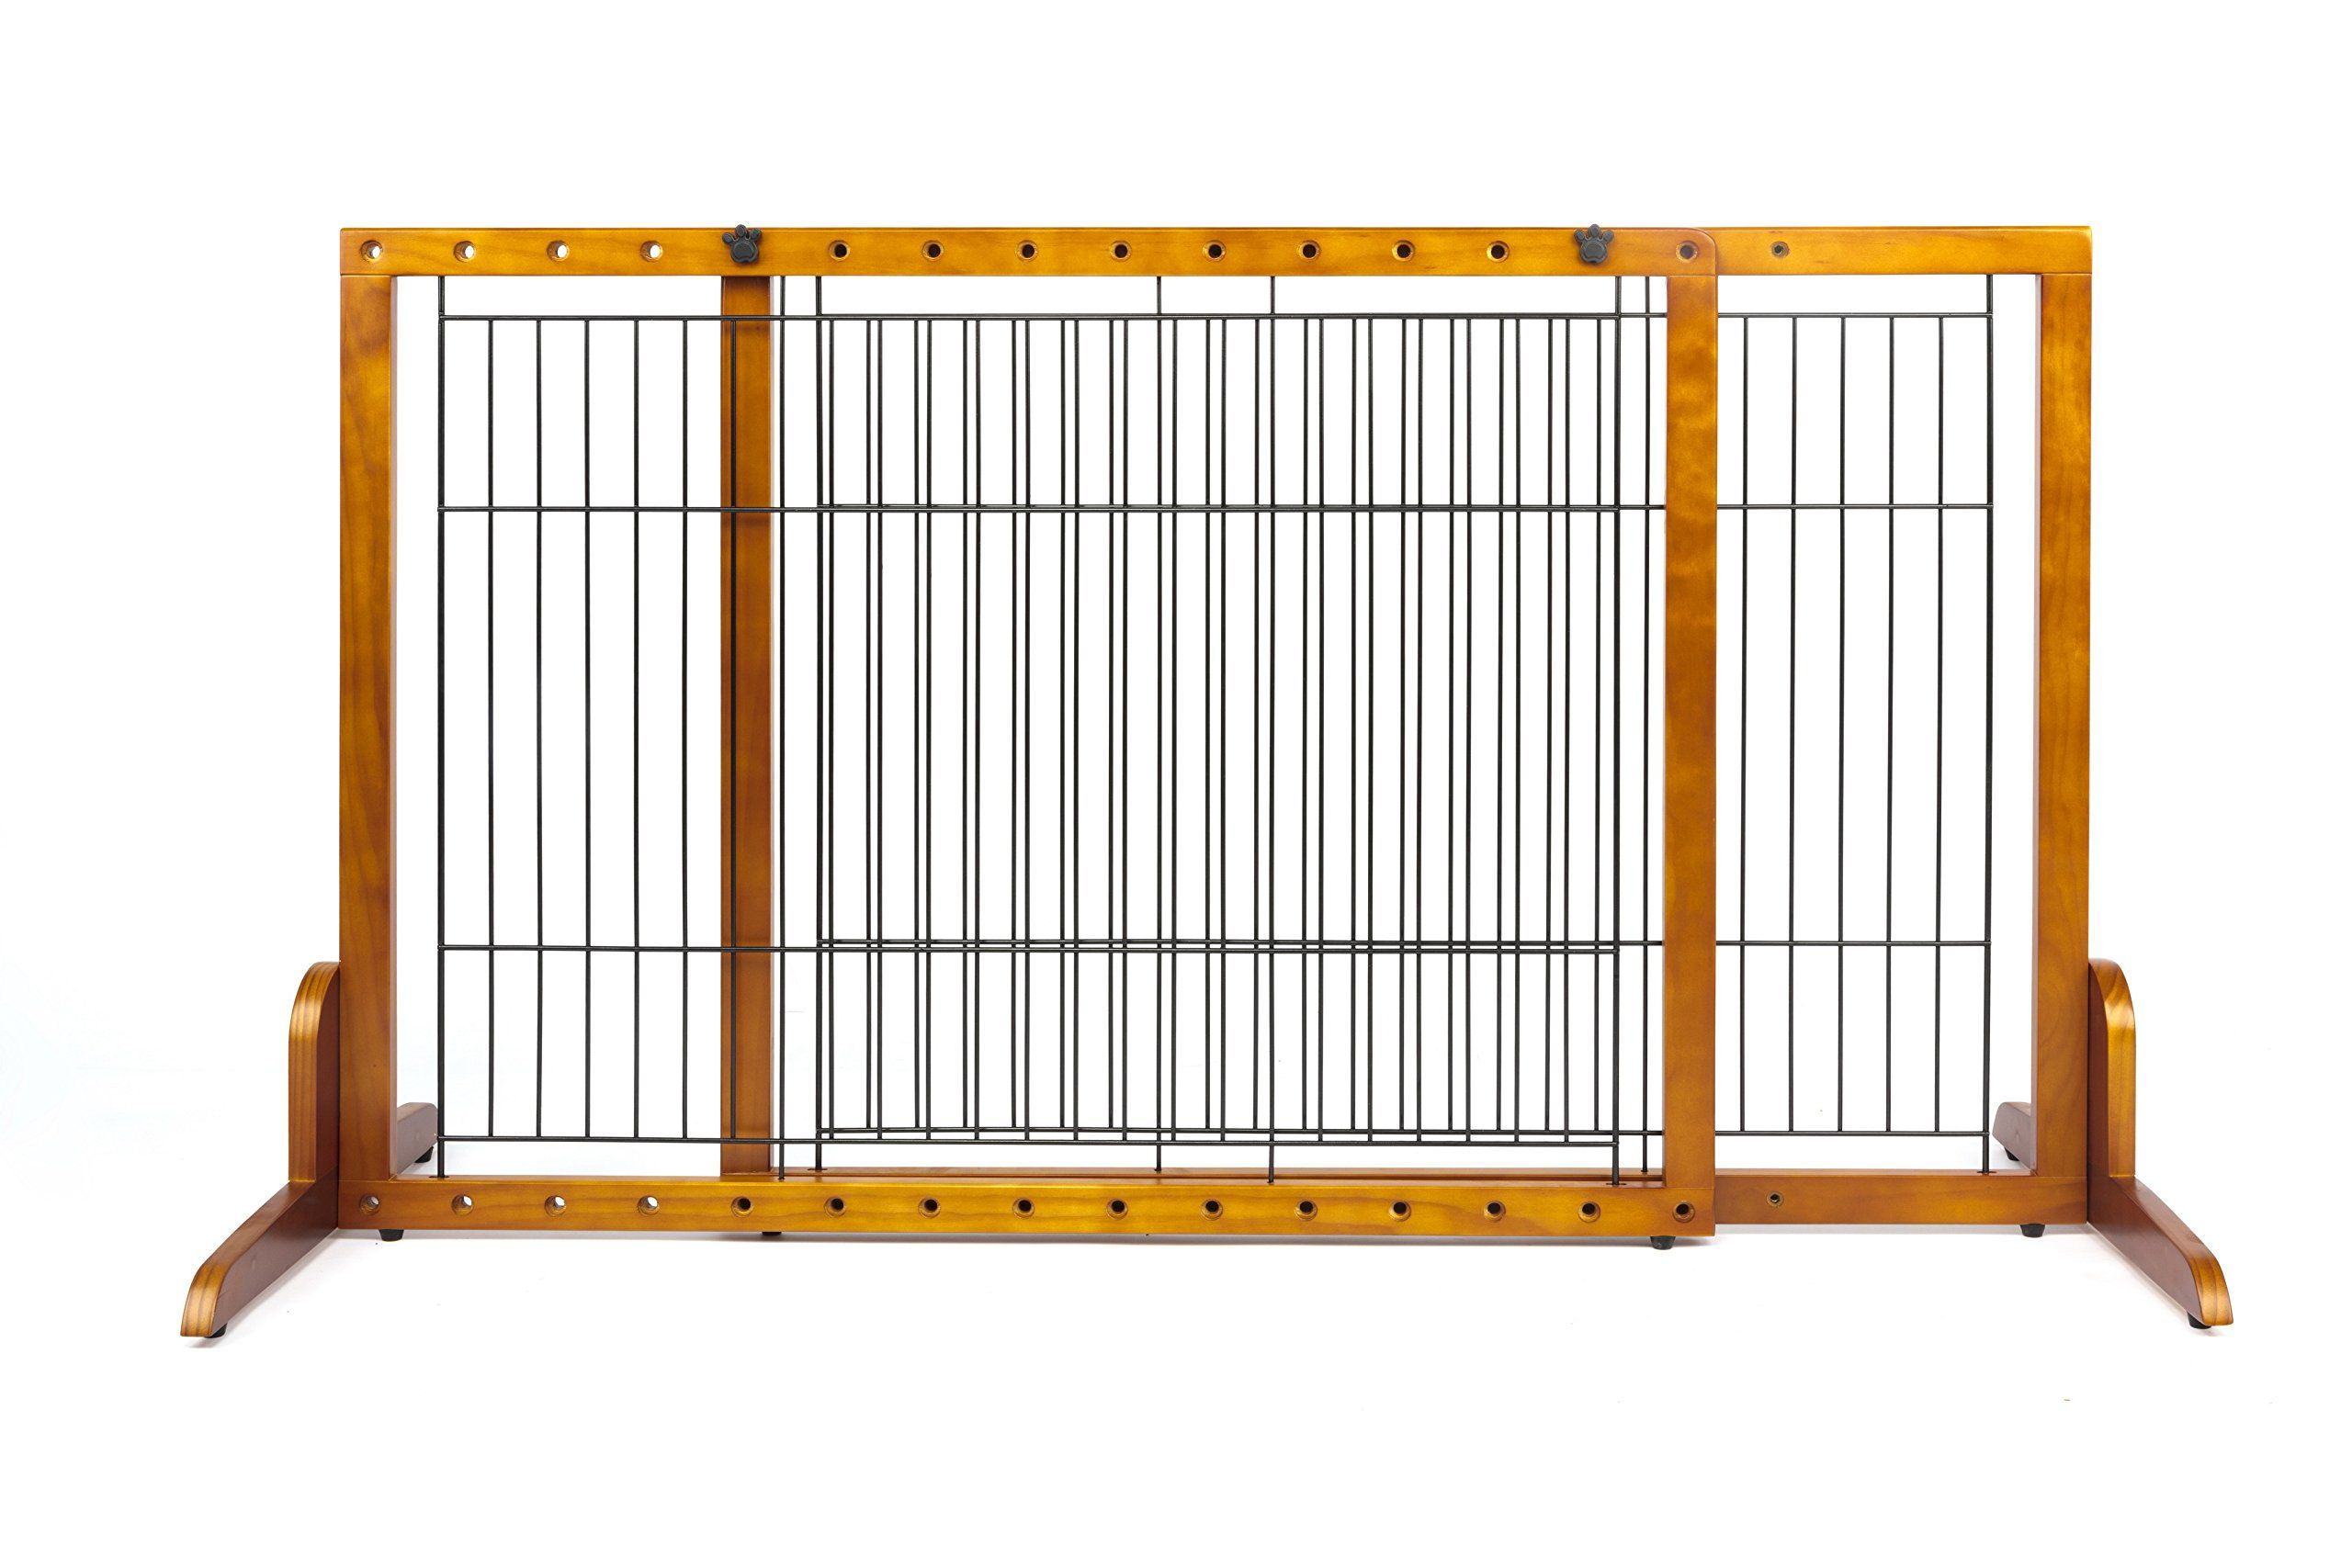 Simply Plus Wooden Pet Gate No Door Freestanding Pet Dog Gate For Indoor Home And Office Use Keeps Pets Safe Easy Set Up N Wooden Pet Gate Dog Gate Pet Gate